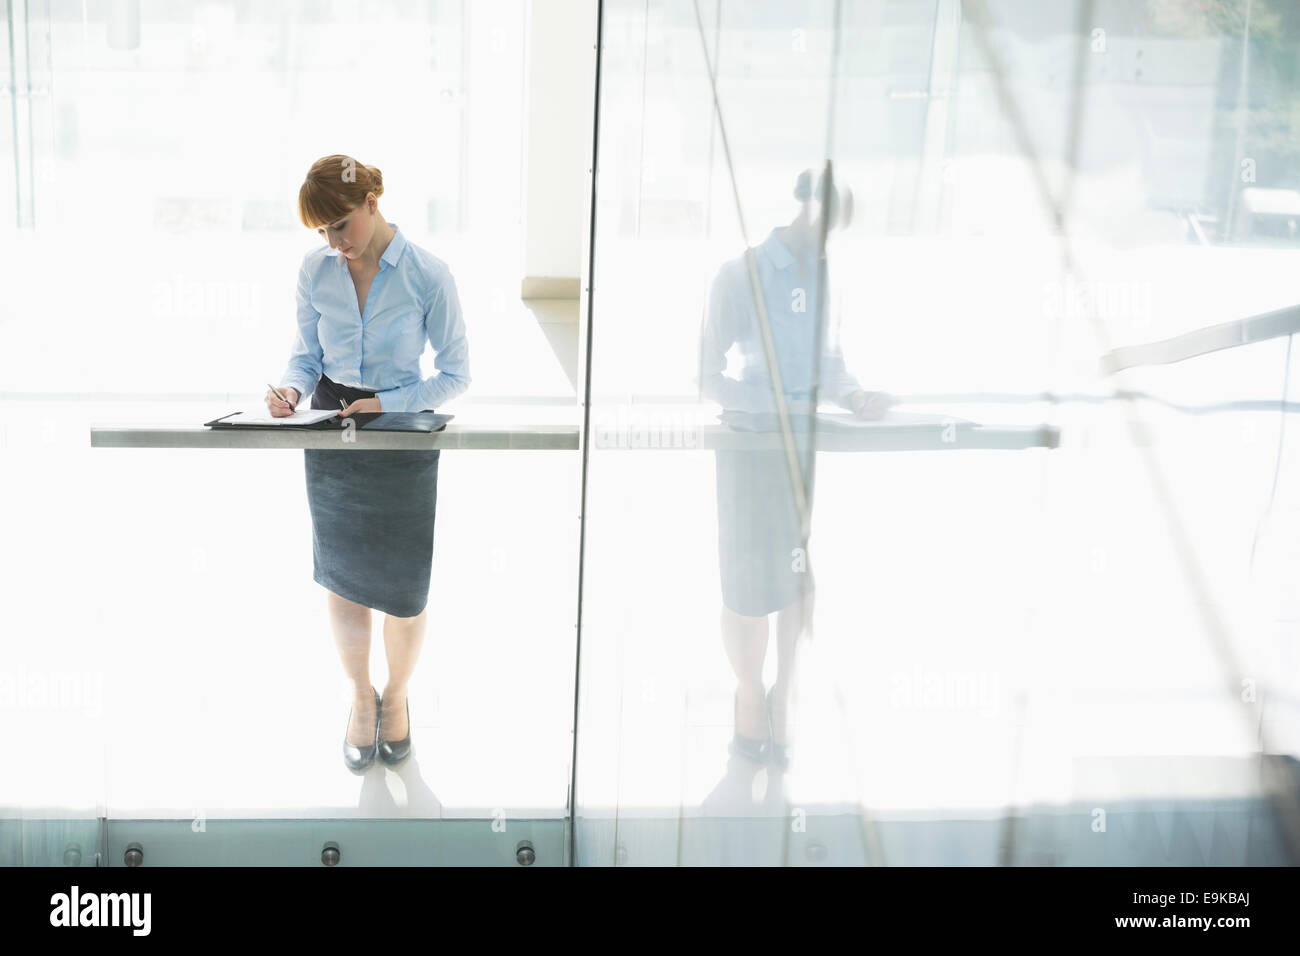 Full-length of woman in office de document Photo Stock